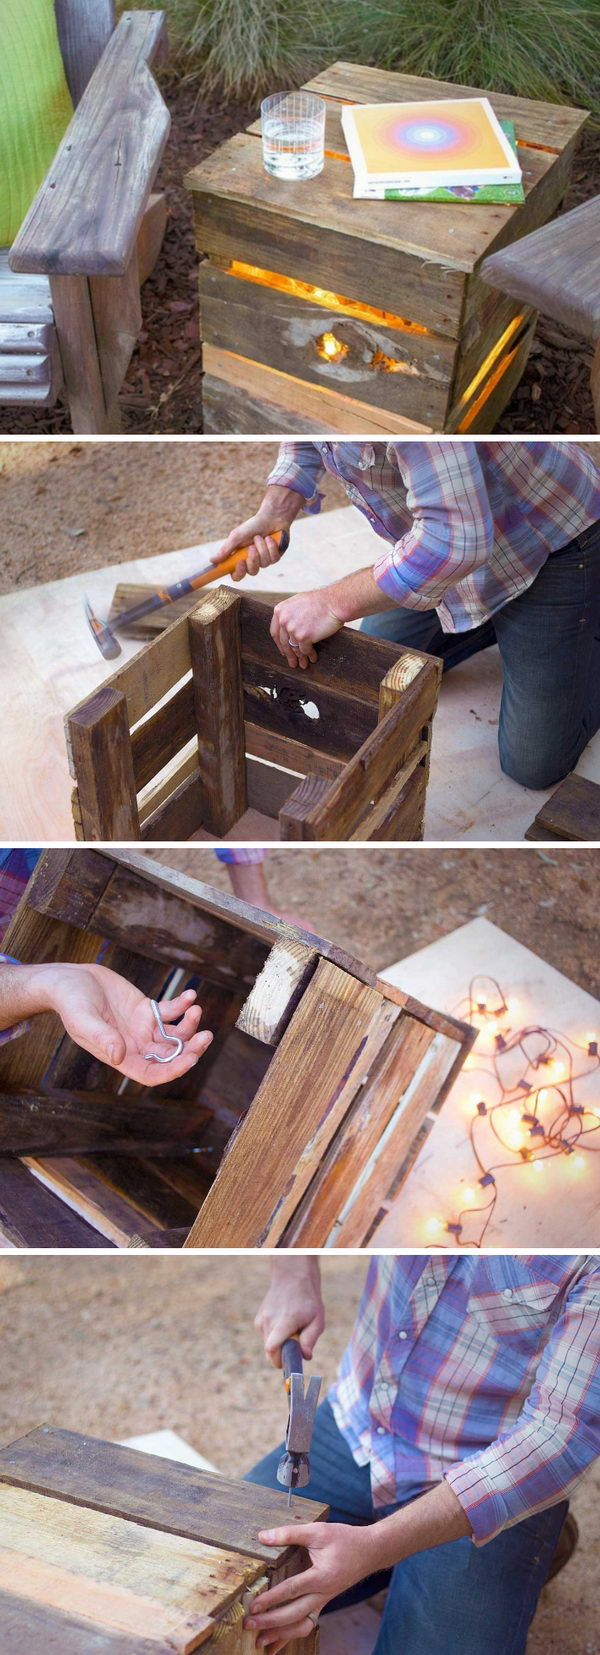 12 outdoor lighting diy ideas tutorials - 15 Easy DIY Outdoor Lighting Ideas